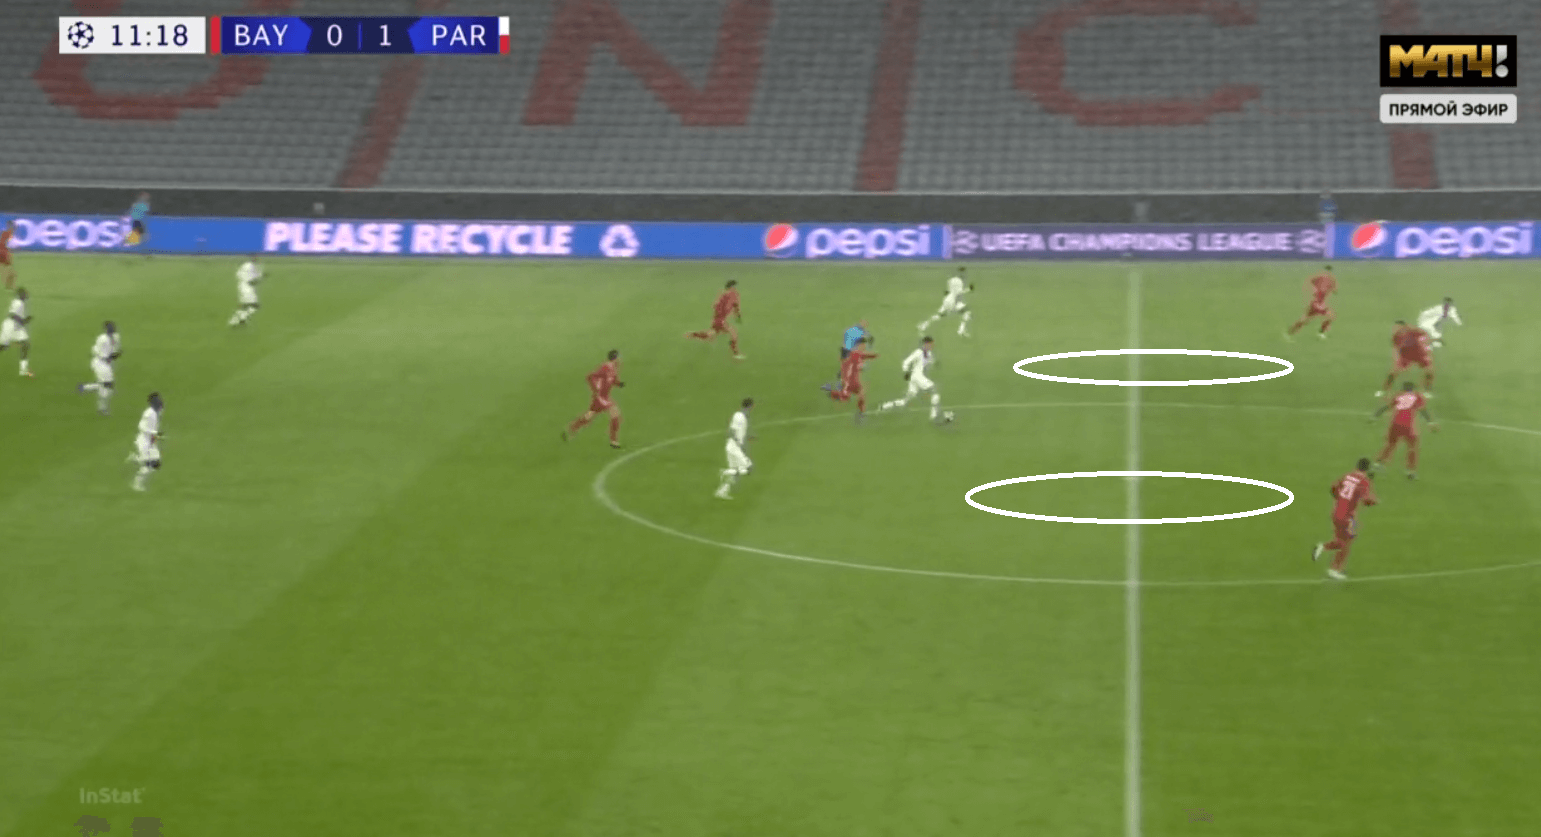 Wide rotations, switches and Execution: How can Flick inspire Bayern to a comeback in the second leg - tactical preview - tactics - analysis